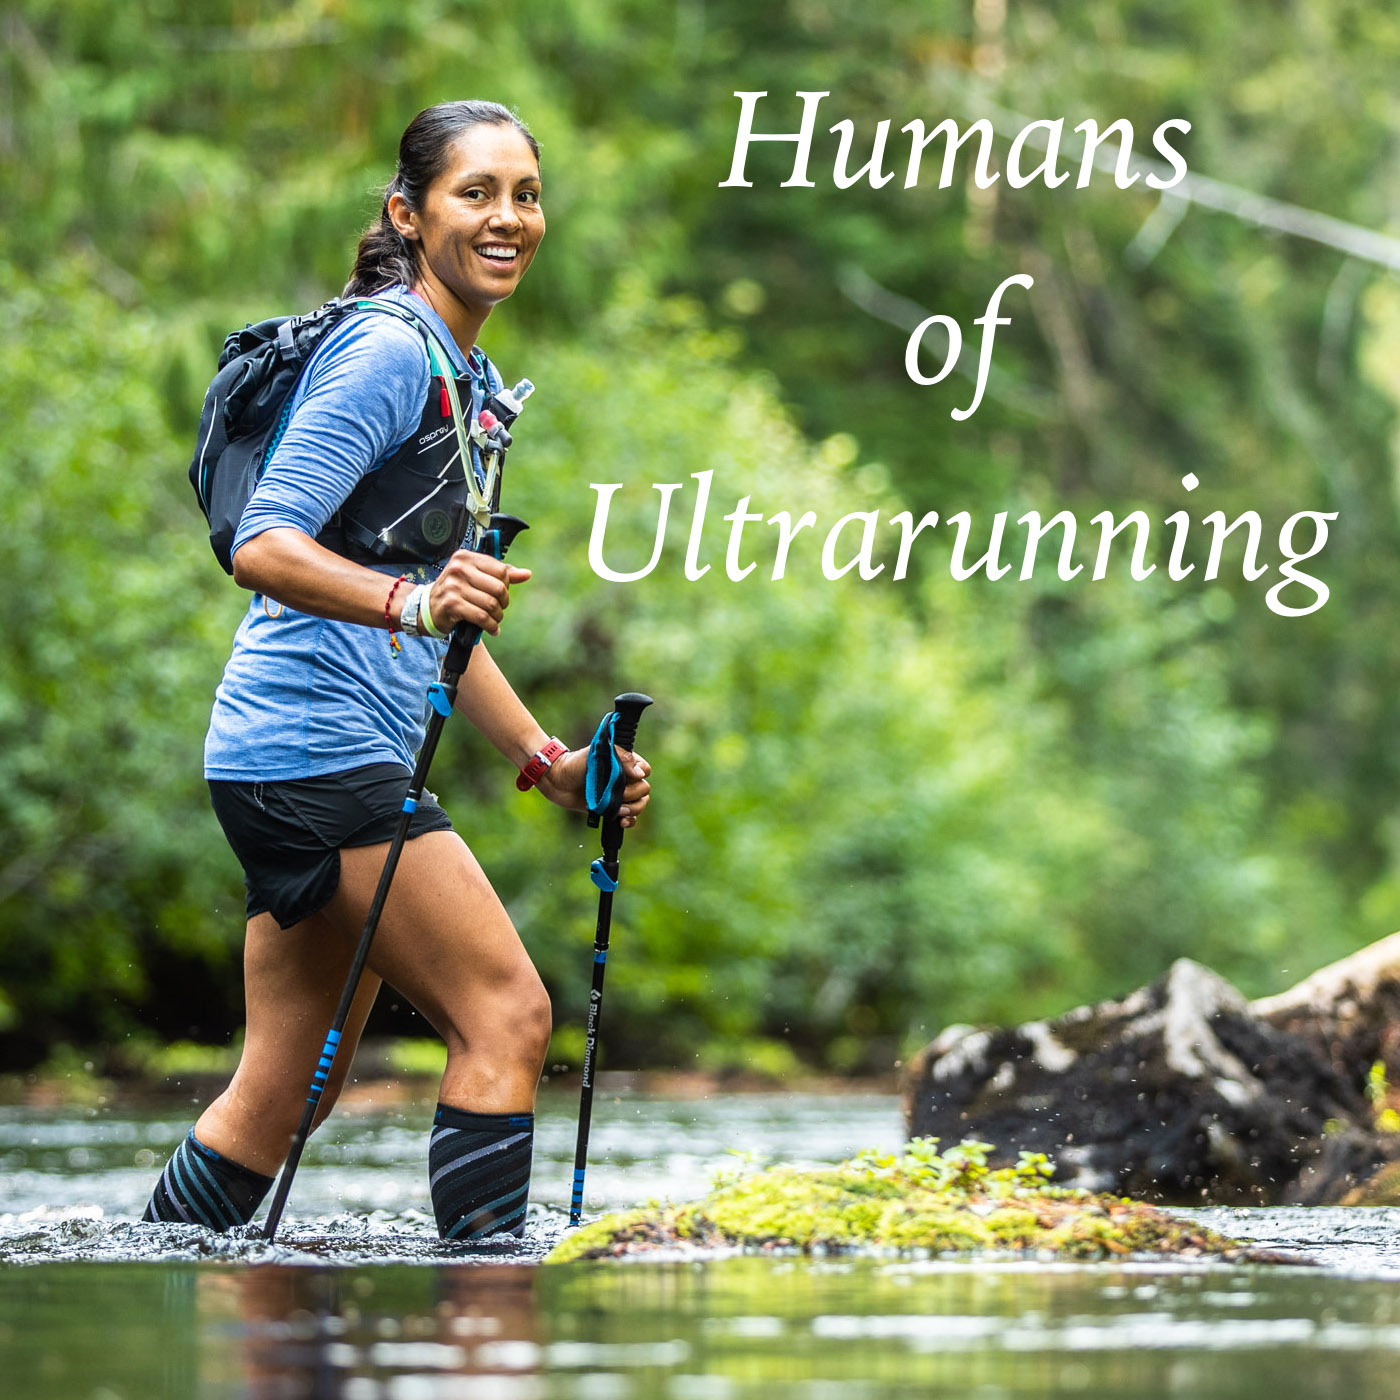 Humans of Ultrarunning